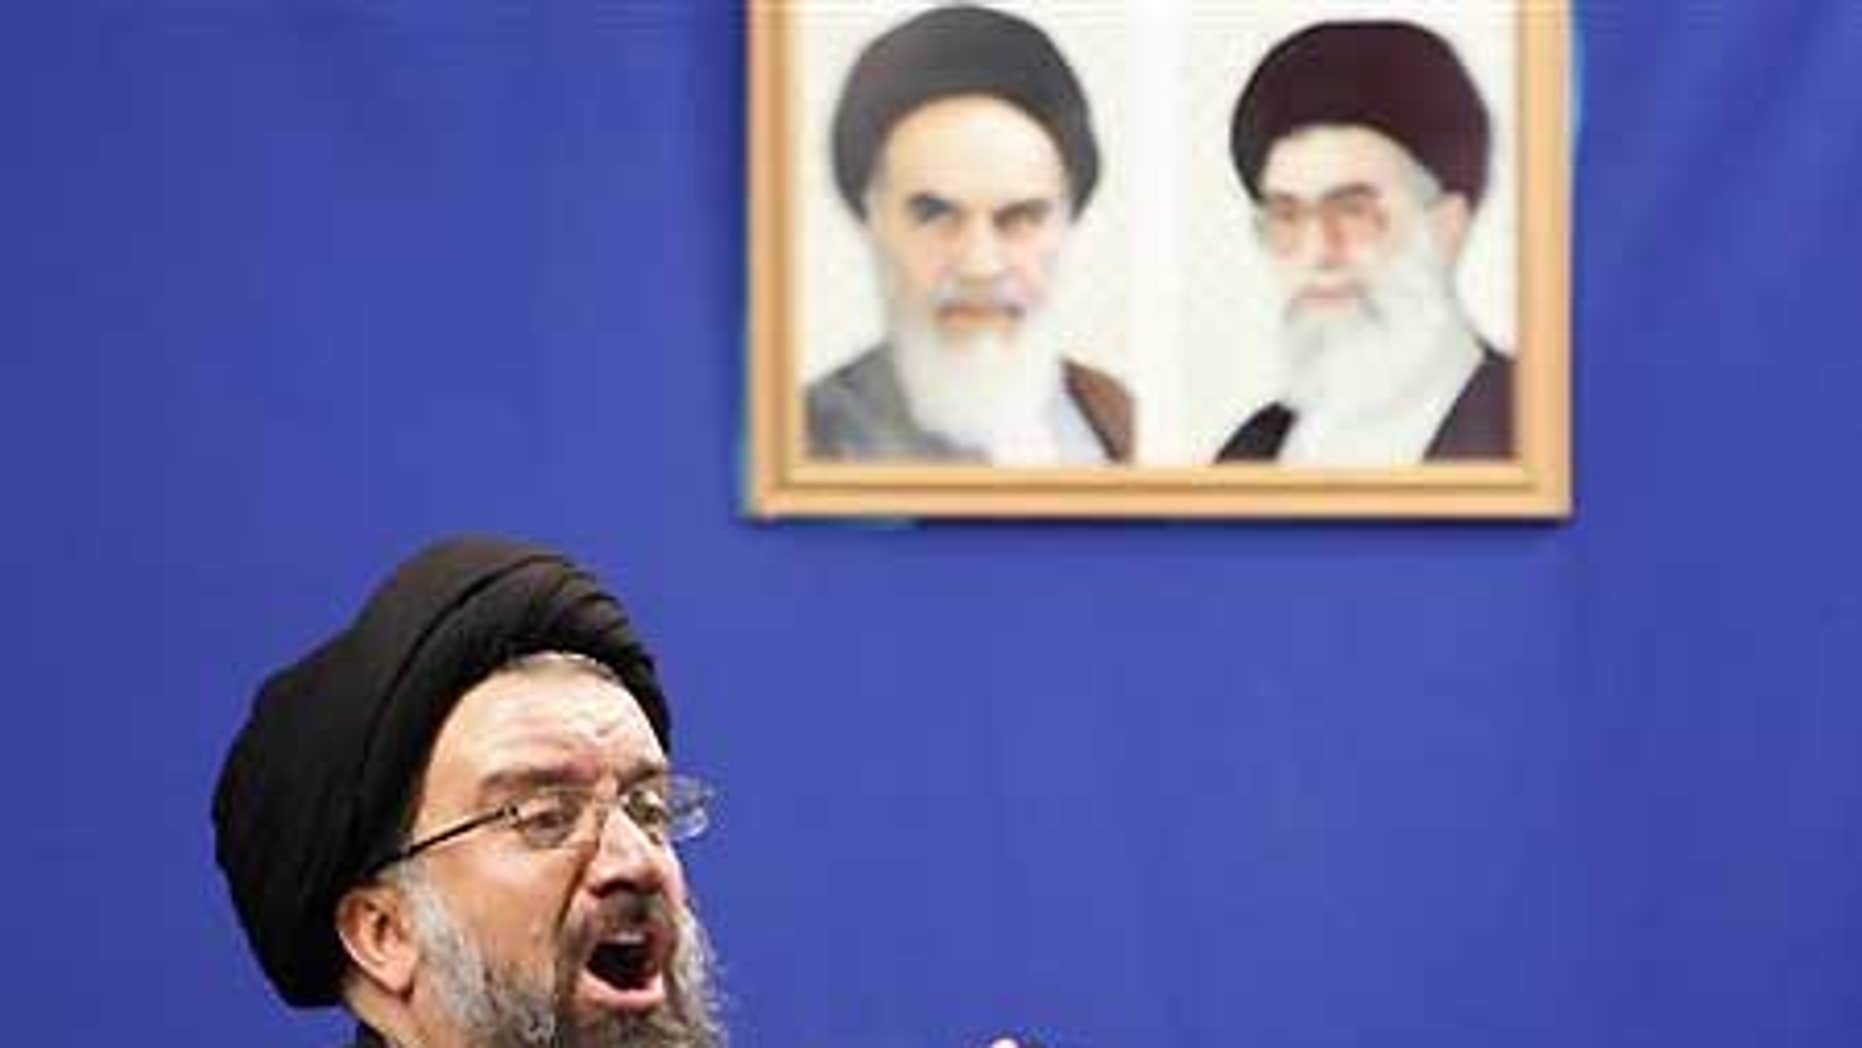 Friday June 26: Iranian senior hard-line cleric Ayatollah Ahmad Khatami urged government to punish post-election rioters during Friday prayers.